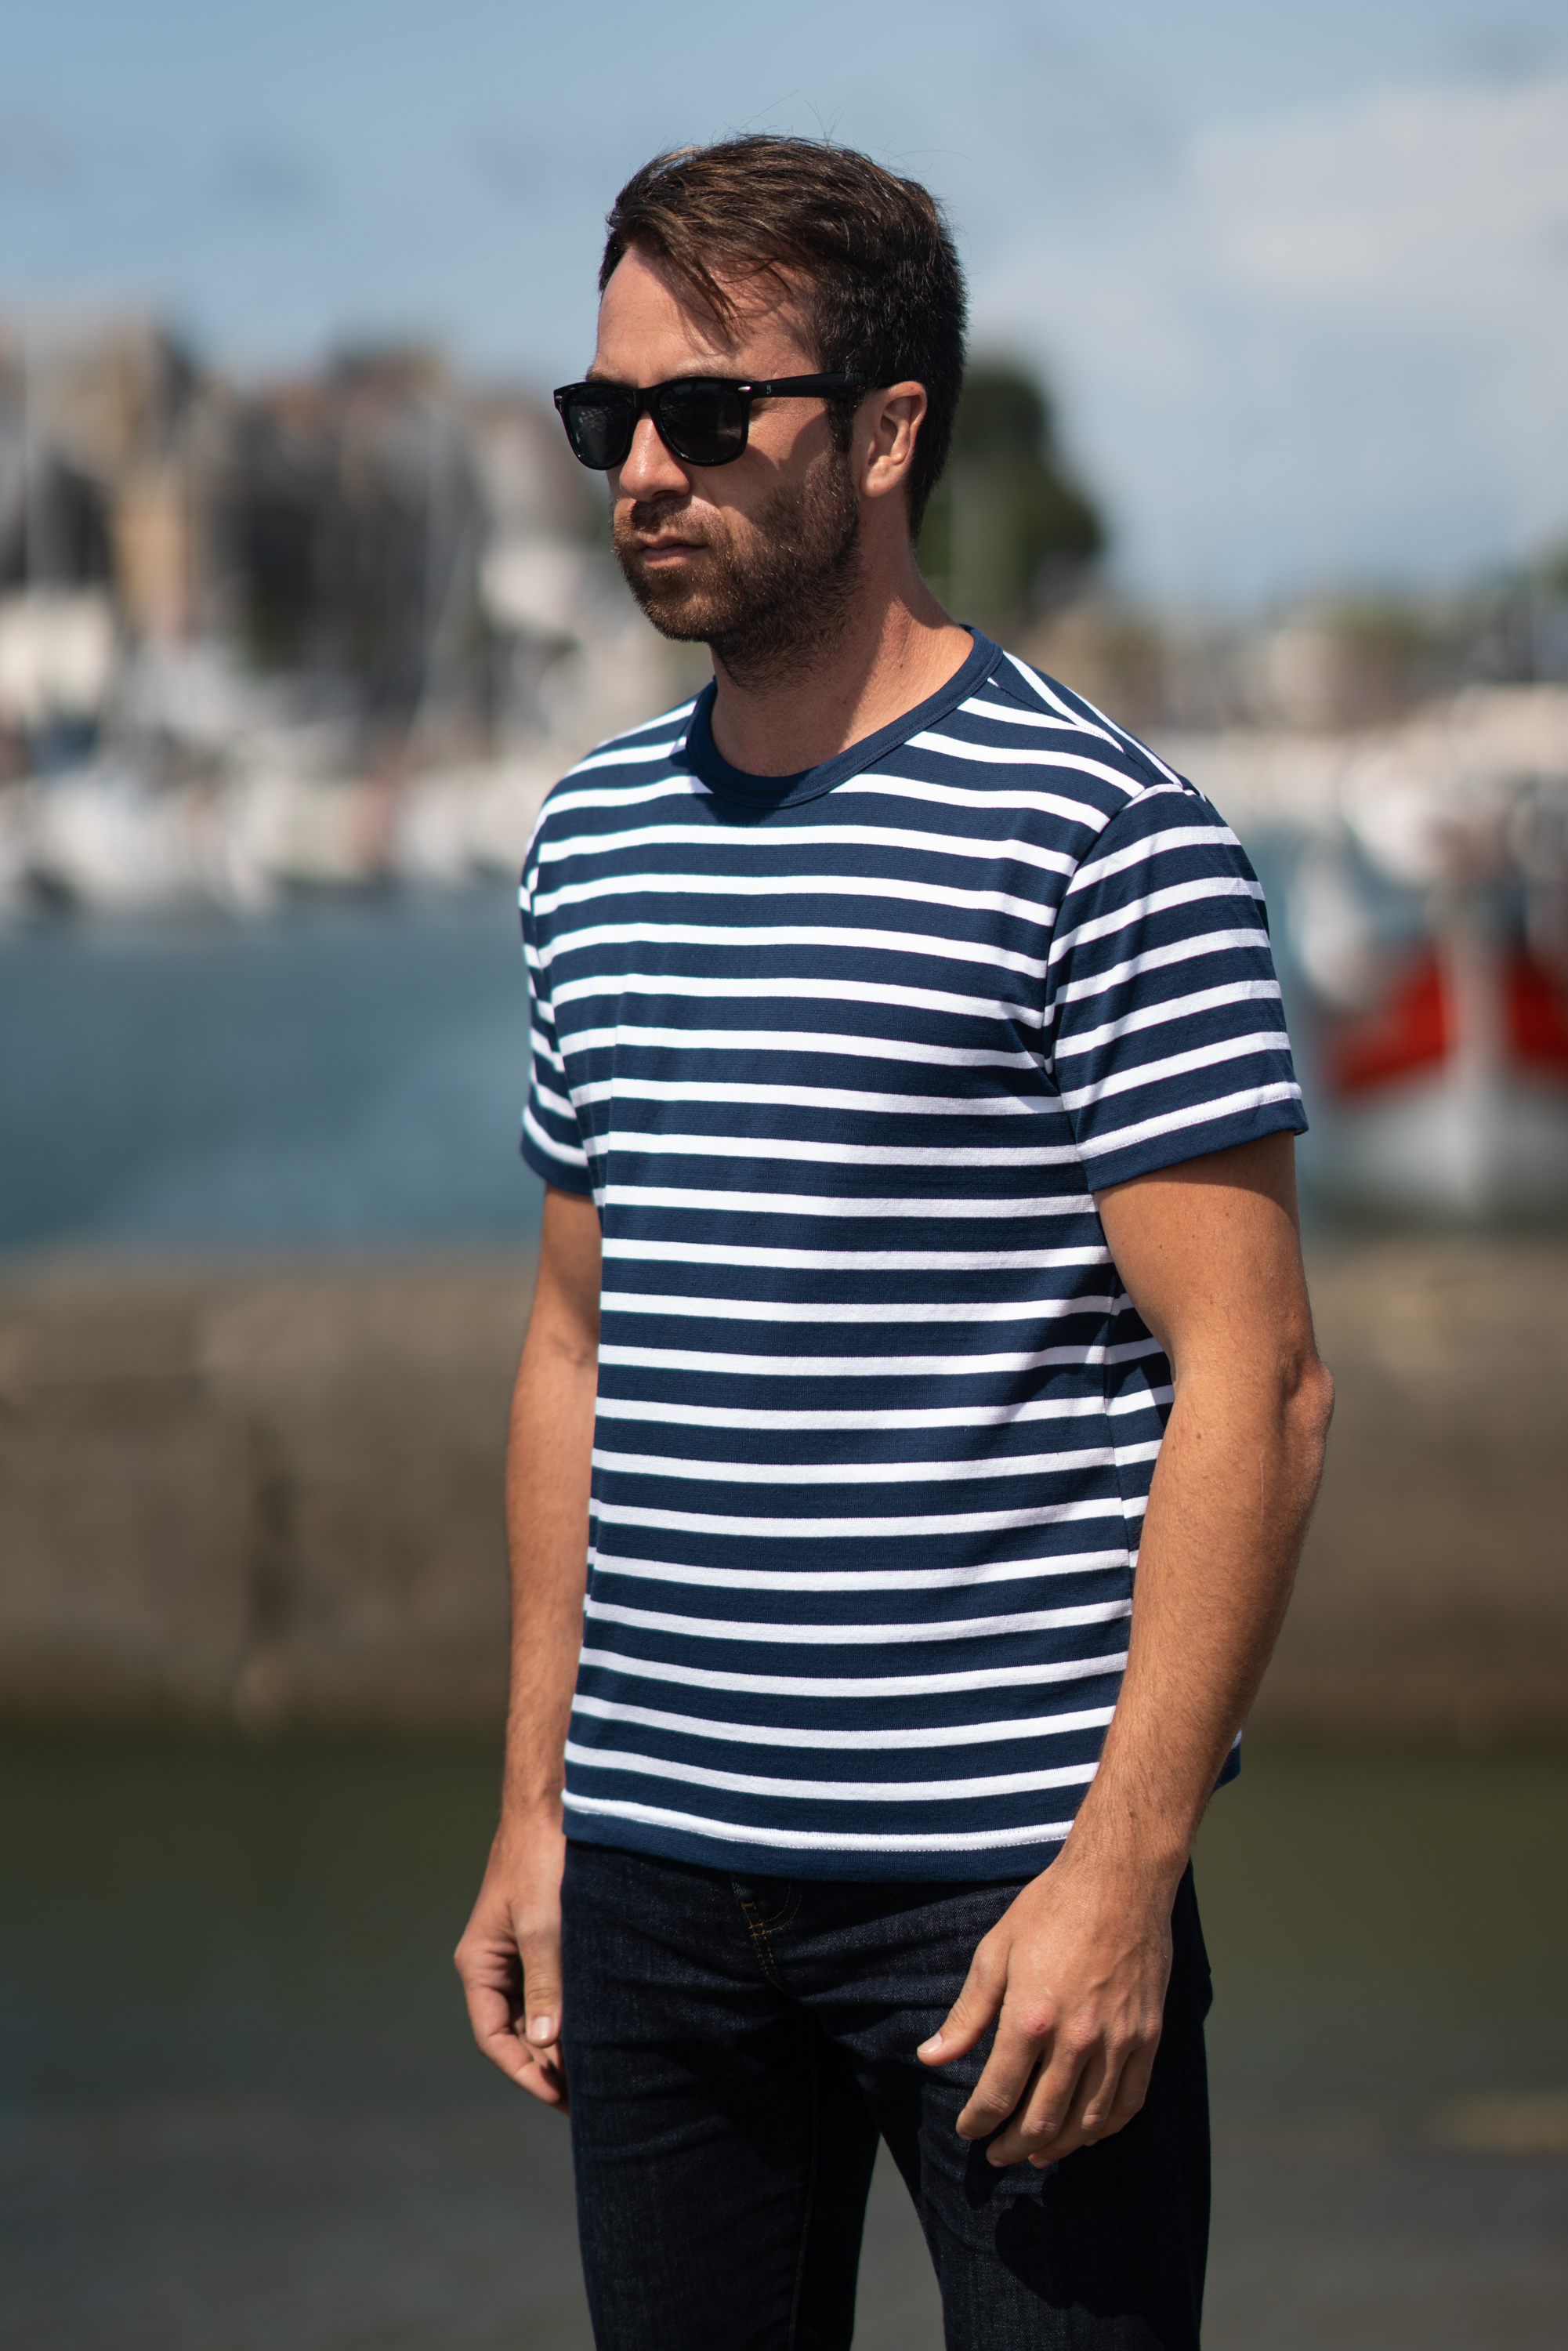 Mariniere-classique-frenchaholic-made-in-France-marine-blanc-1